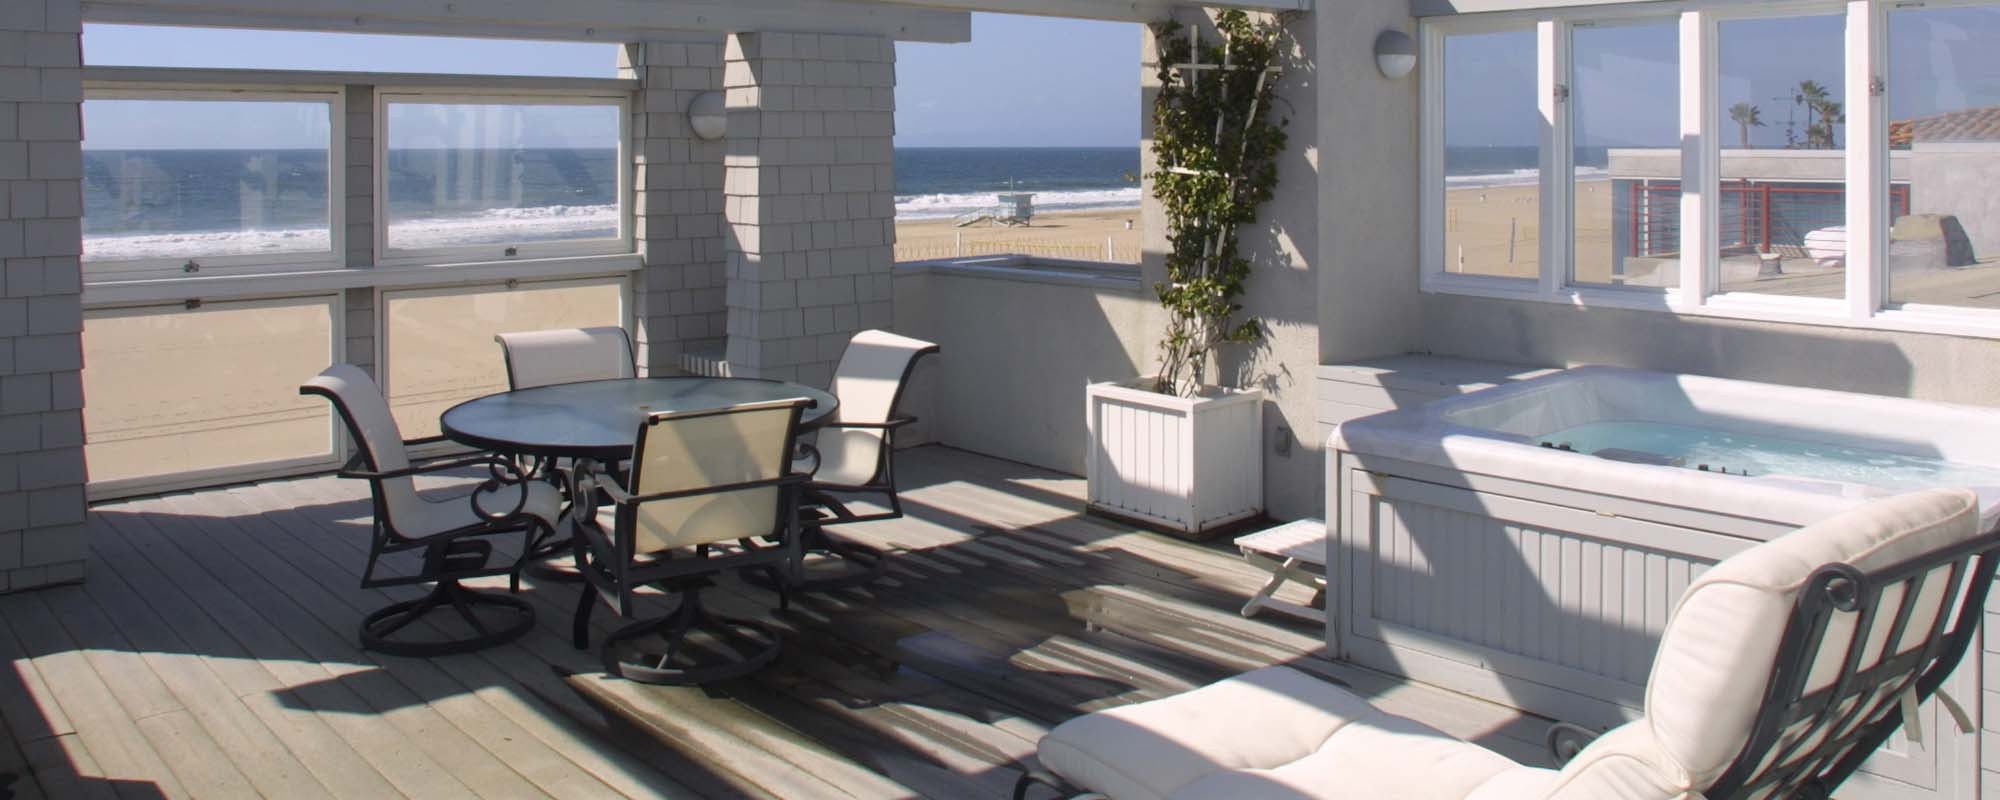 NJ Deck Builder local top rated custom deck builder NJ Jersey Shore Deck Builder